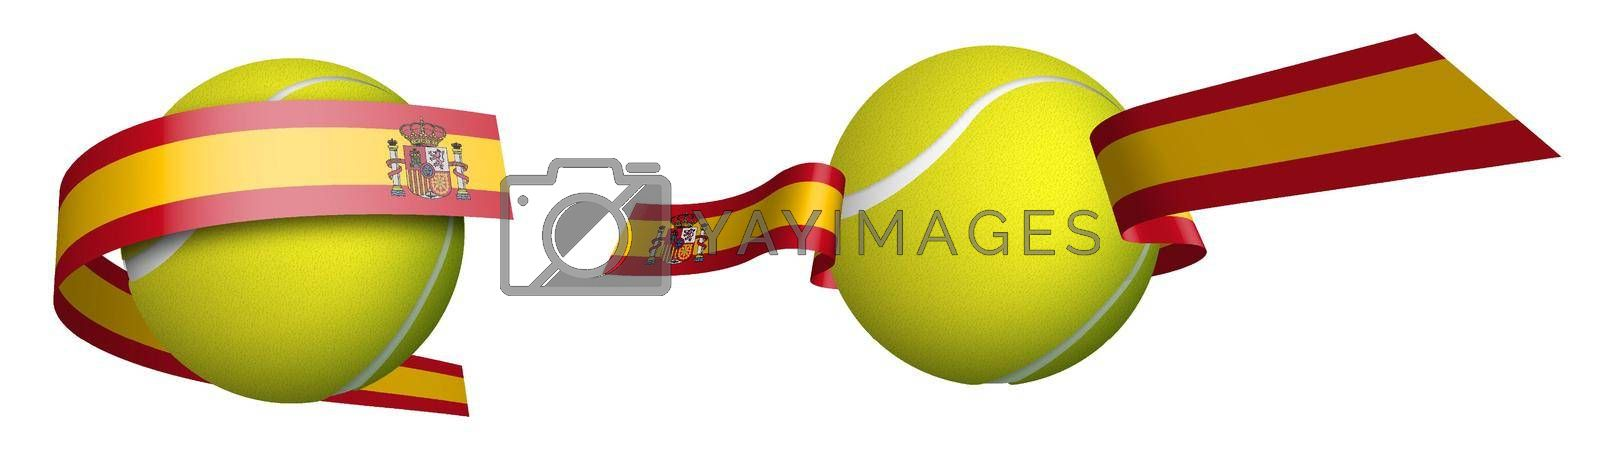 sports tennis ball in ribbons with colors spanish flag. Design element for competitions. World tennis competitions. Isolated vector on white background